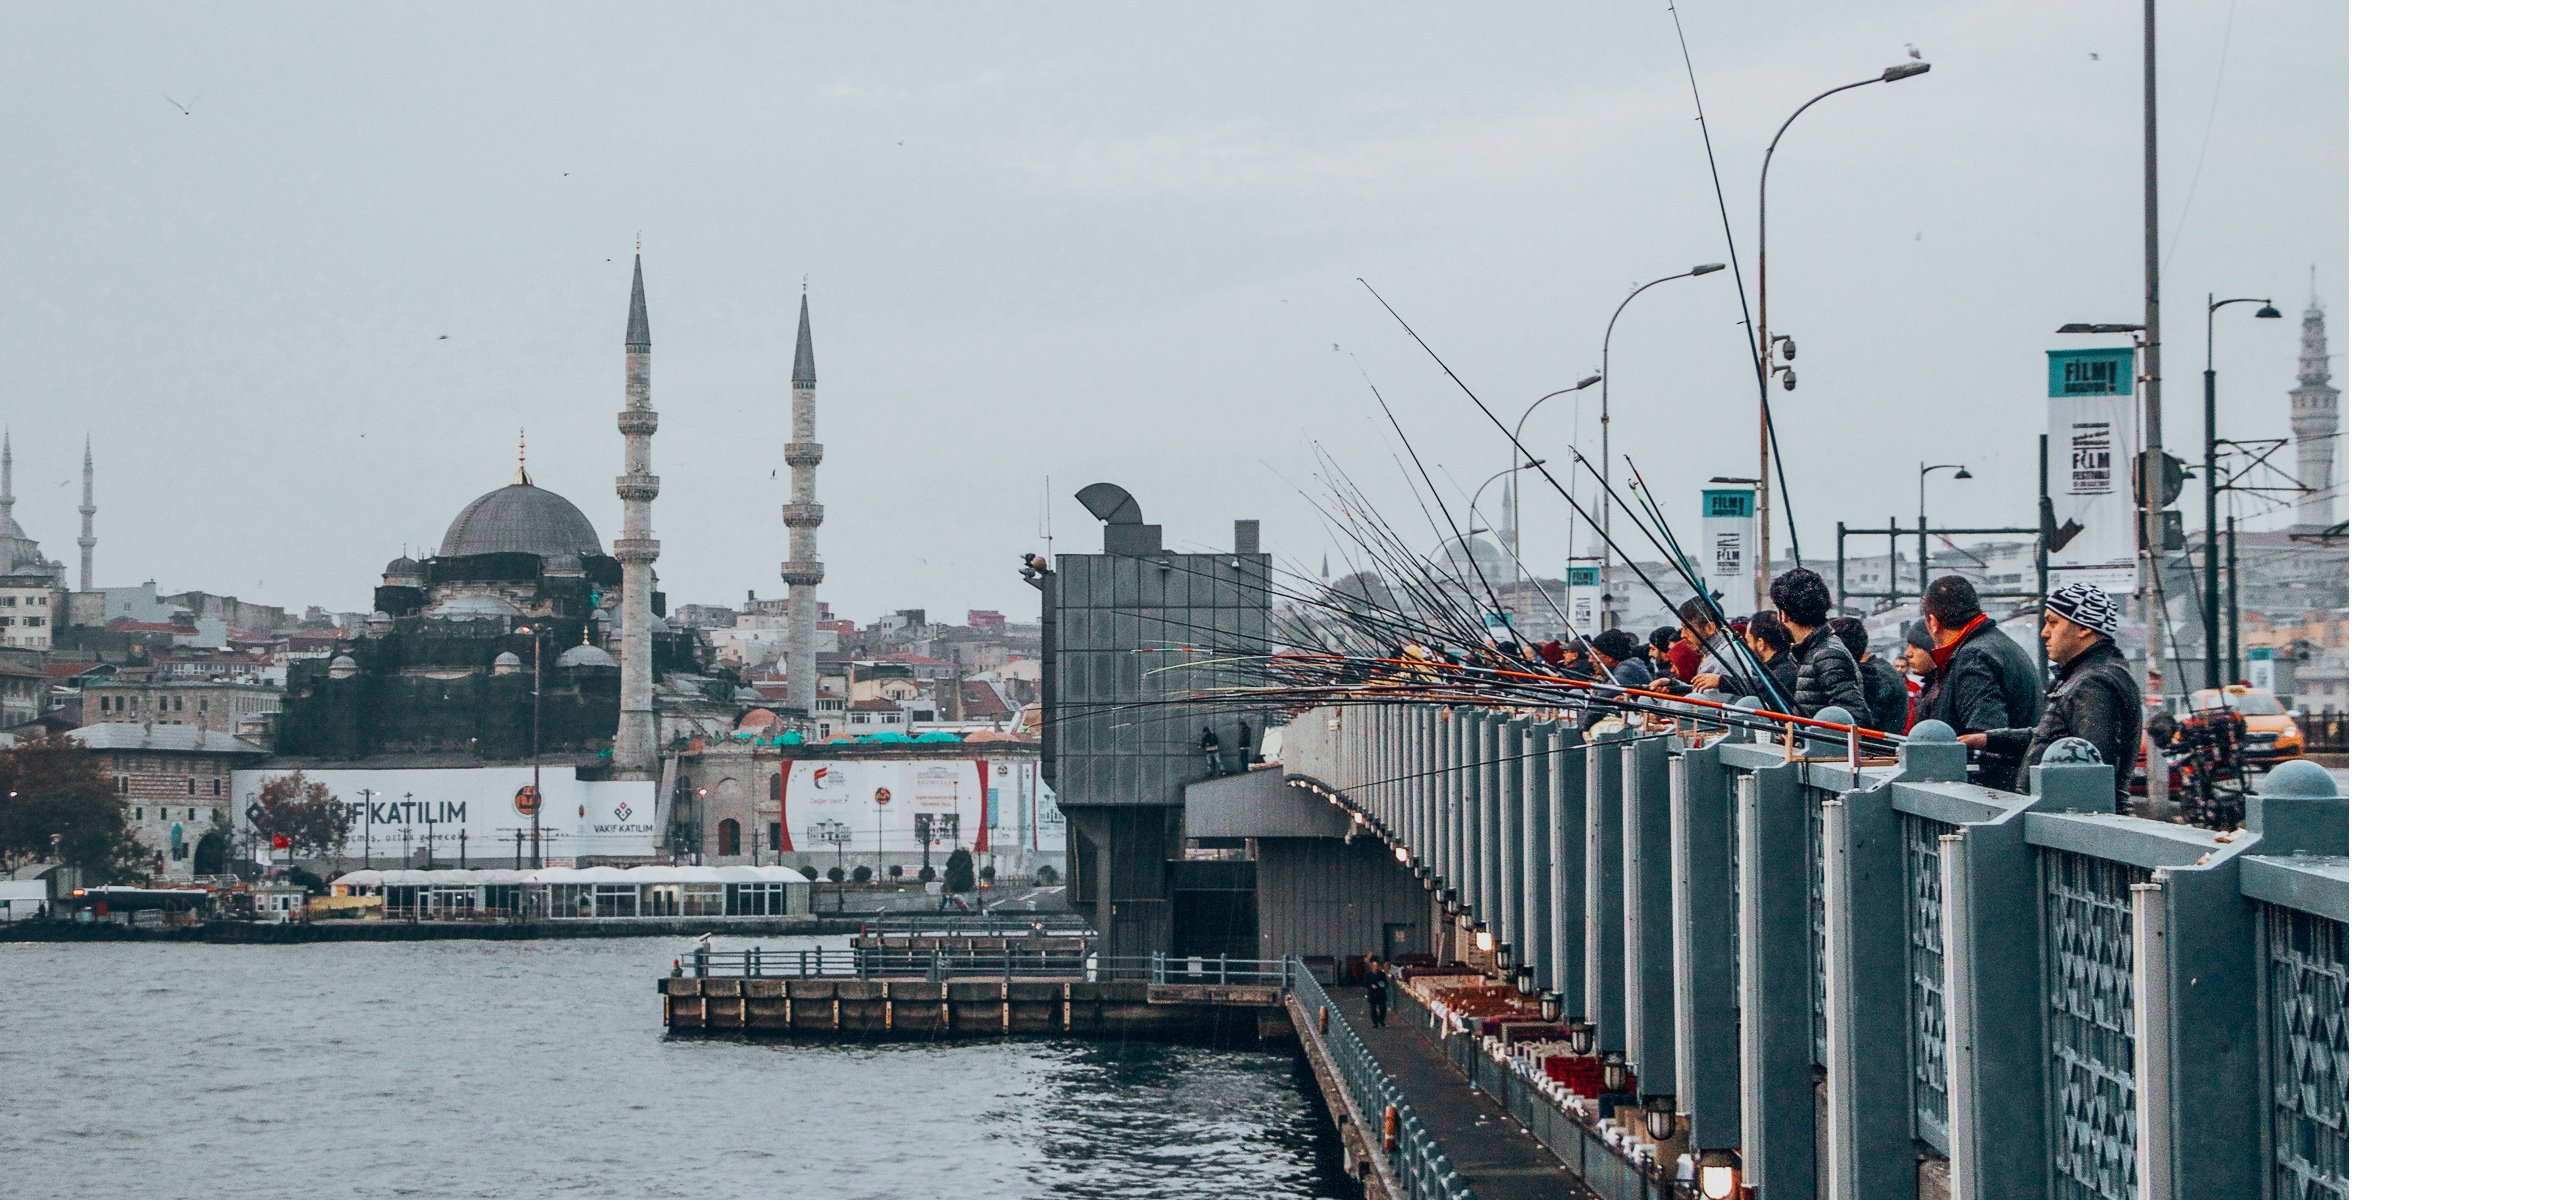 Fisherman wait patiently on the Galata Bridge, How to spend 4 days in Istanbul